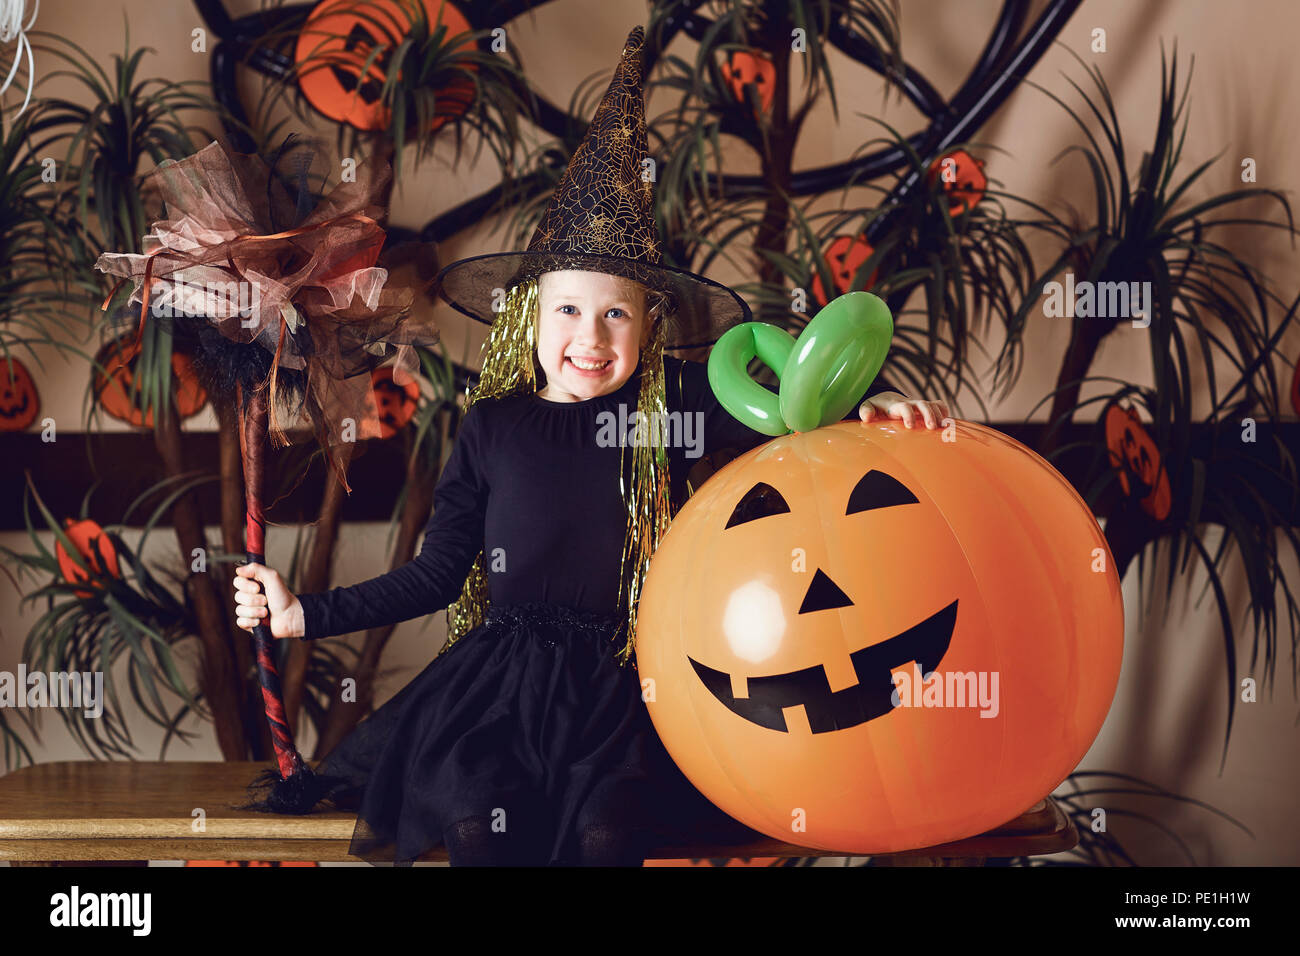 Funny little girl in a Halloween costume - Stock Image